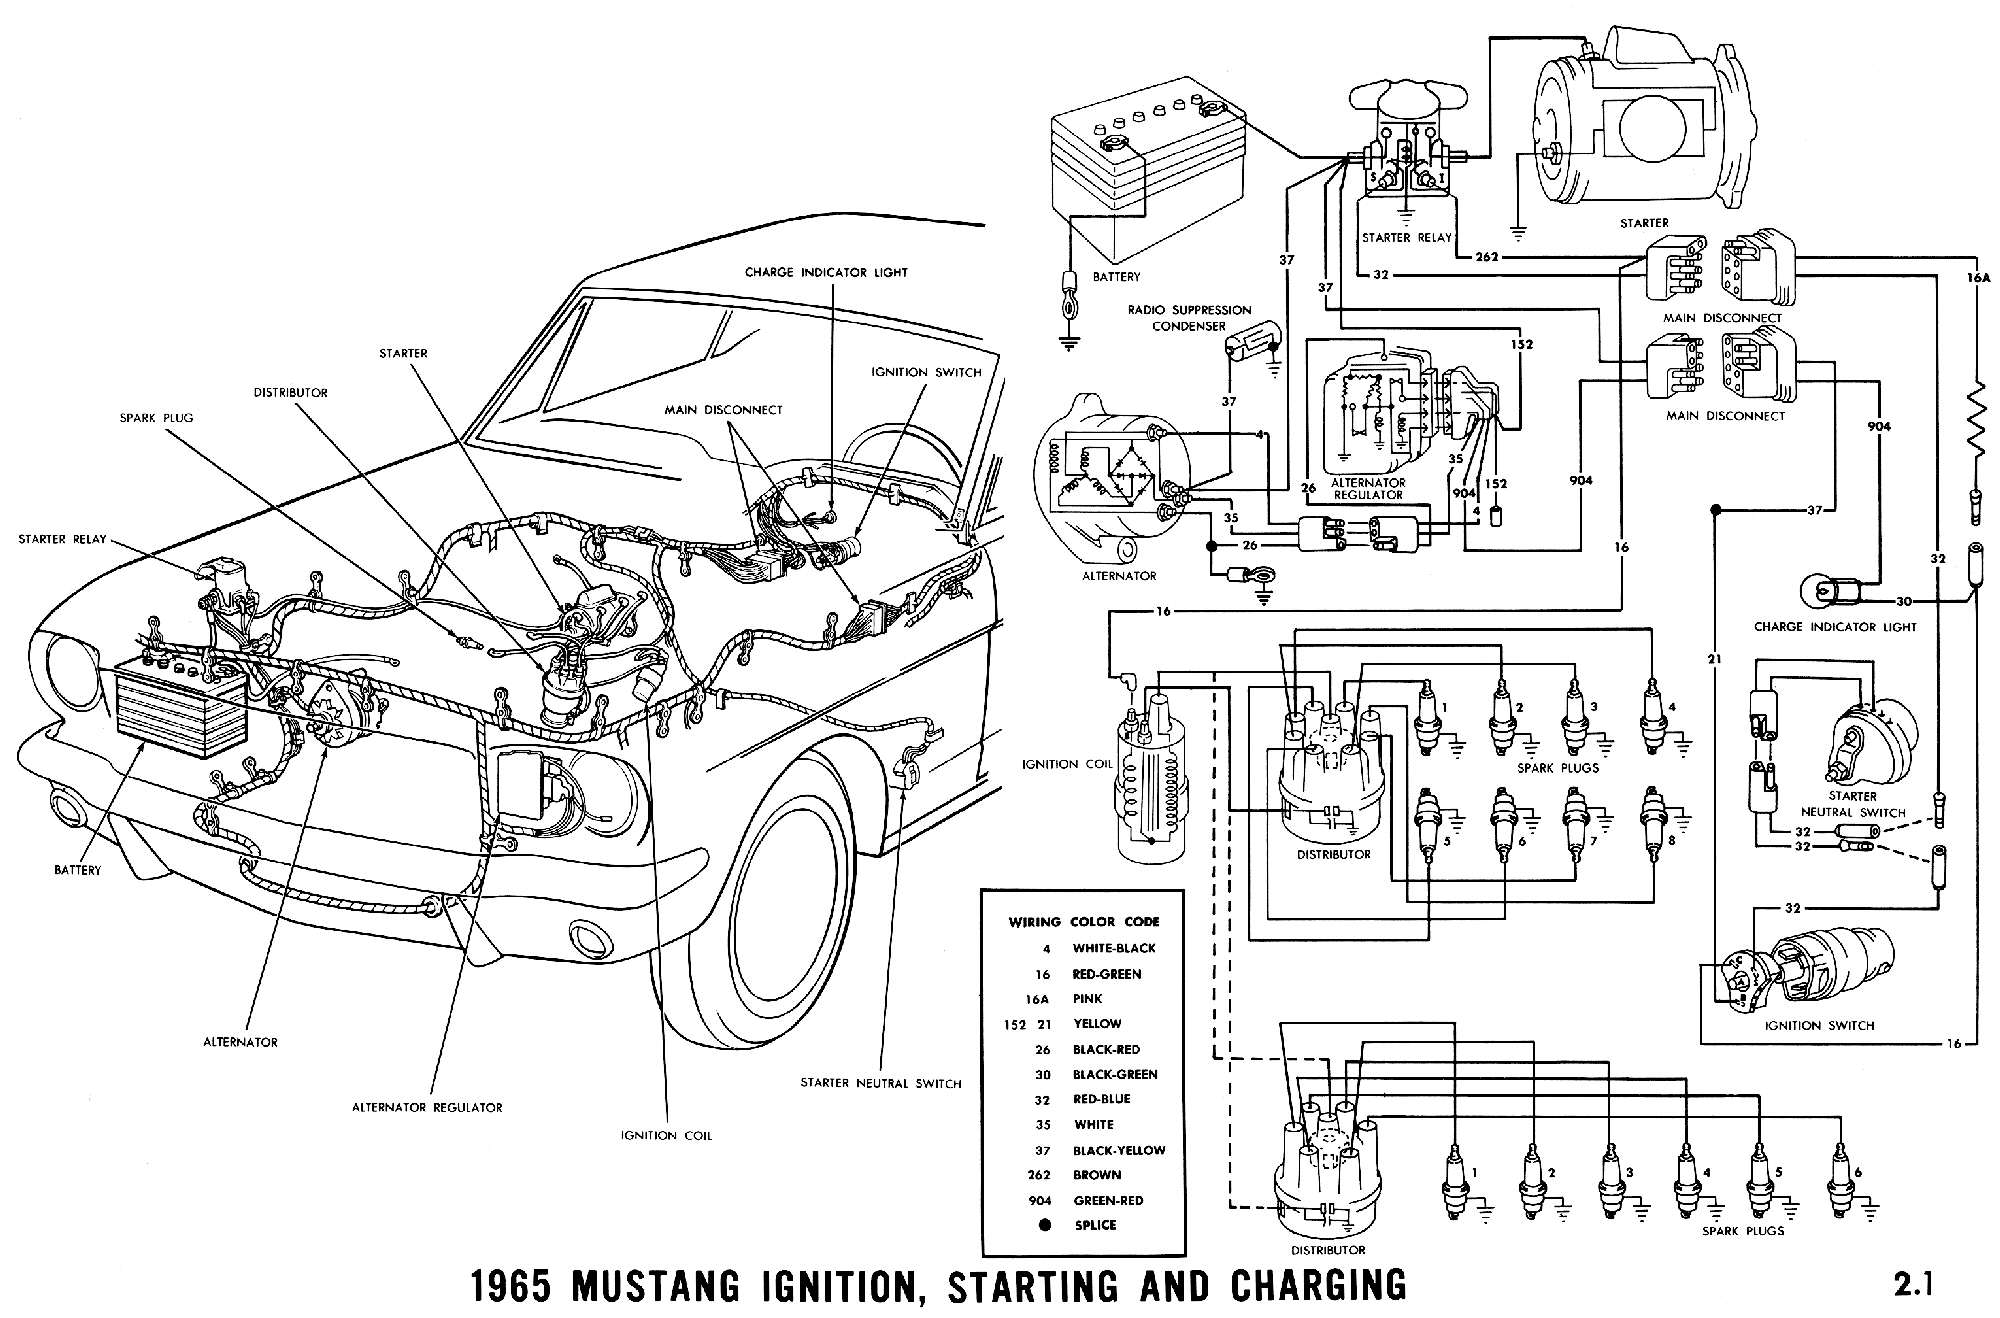 mustang electrical diagram, 65 mustang diagram, mustang fuel line diagram, mustang solenoid wiring diagram, mustang electrical harness, mustang rear caliper diagram, 2006 mustang shaker 500 wiring diagram, 1966 ford truck alternator diagram, mustang vacuum line diagram, mustang frame diagram, mustang ignition diagram, 1993 ford mustang vacuum diagram, 1988 mustang wiring diagram, mustang fuel system diagram, mustang rear brake assembly diagram, 1992 ford mustang diagram, mustang front end diagram, 1987 mustang wiring diagram, 1970 mustang instrument cluster diagram, 90 mustang wiring diagram, on mustang wiring harness diagram